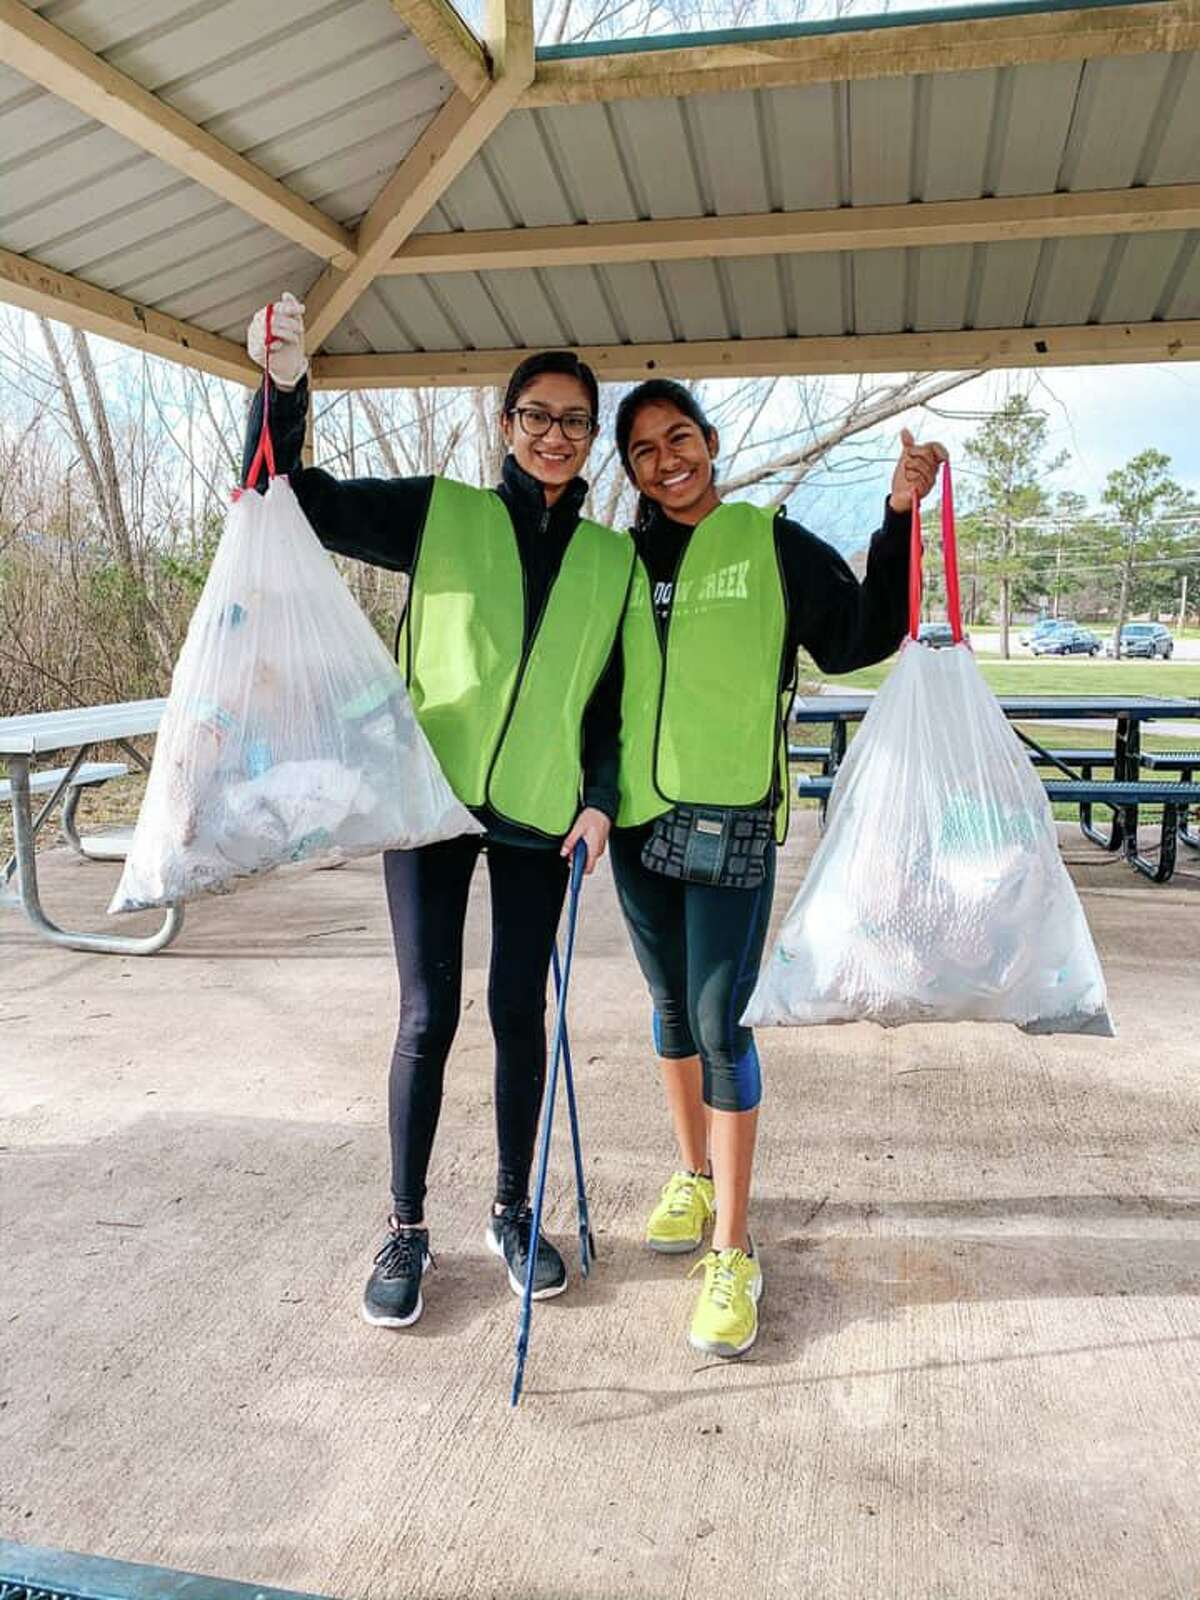 A community cleanup in Pearland is set for Saturday, Sept. 18. Volunteers will meet at Centennial Park before going to different parts of the city to collect litter.